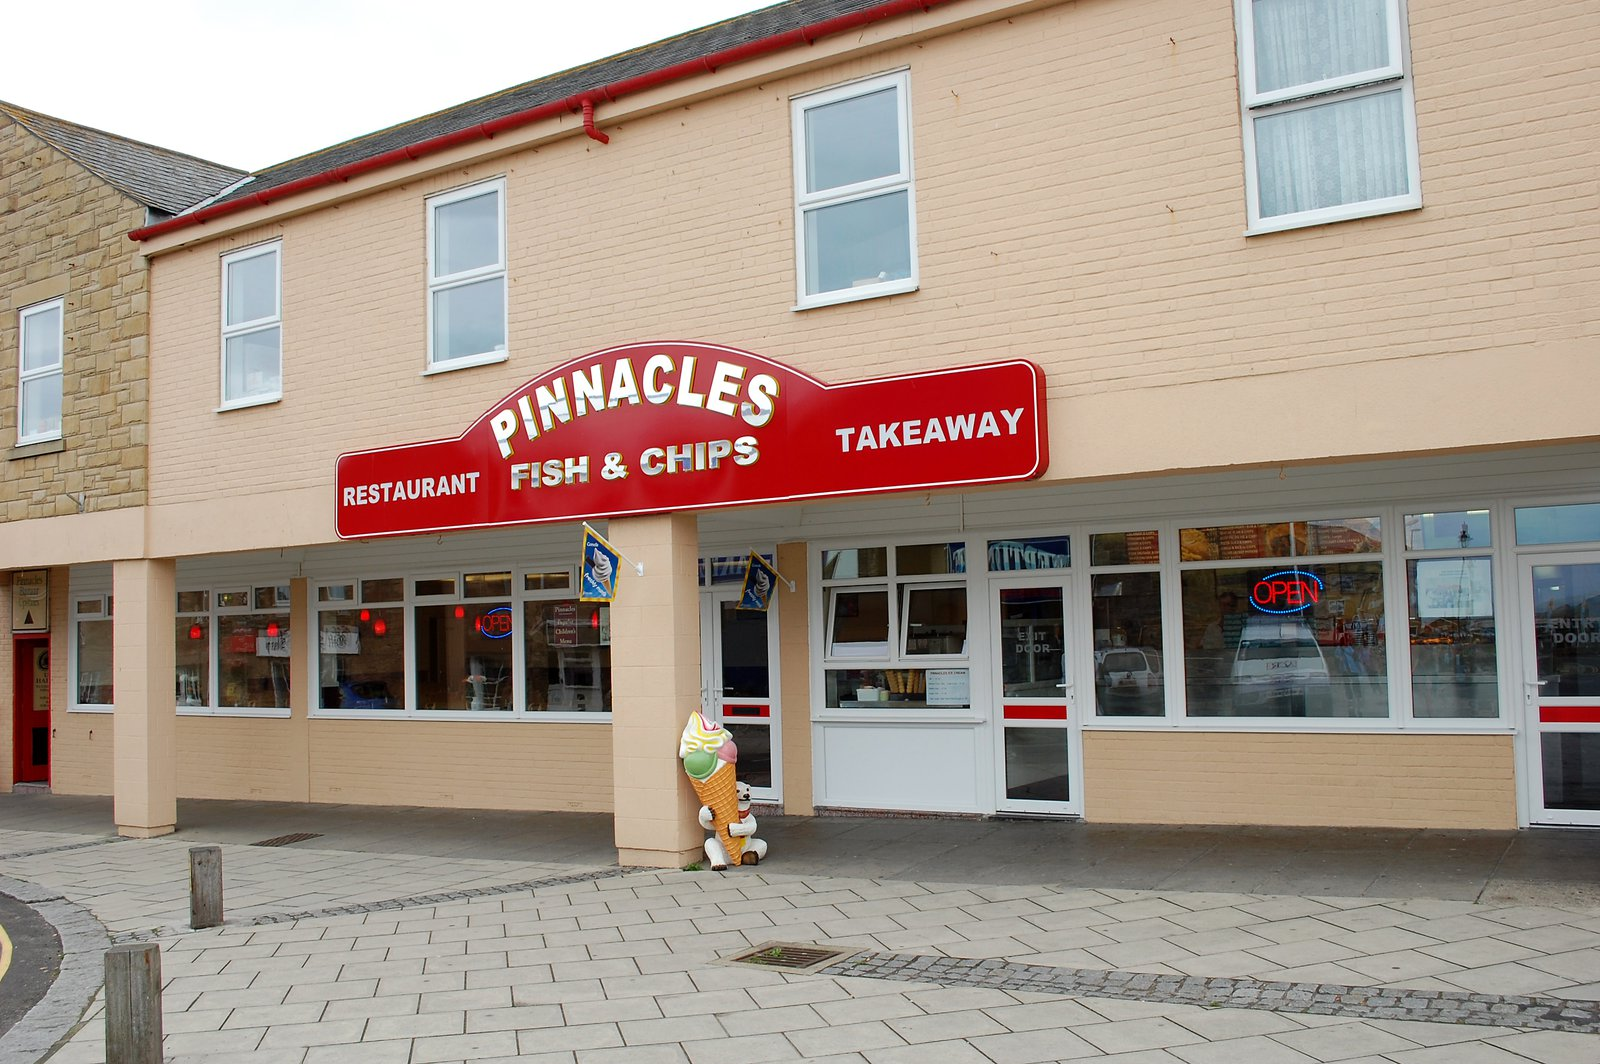 Pinnacle Fish & Chips